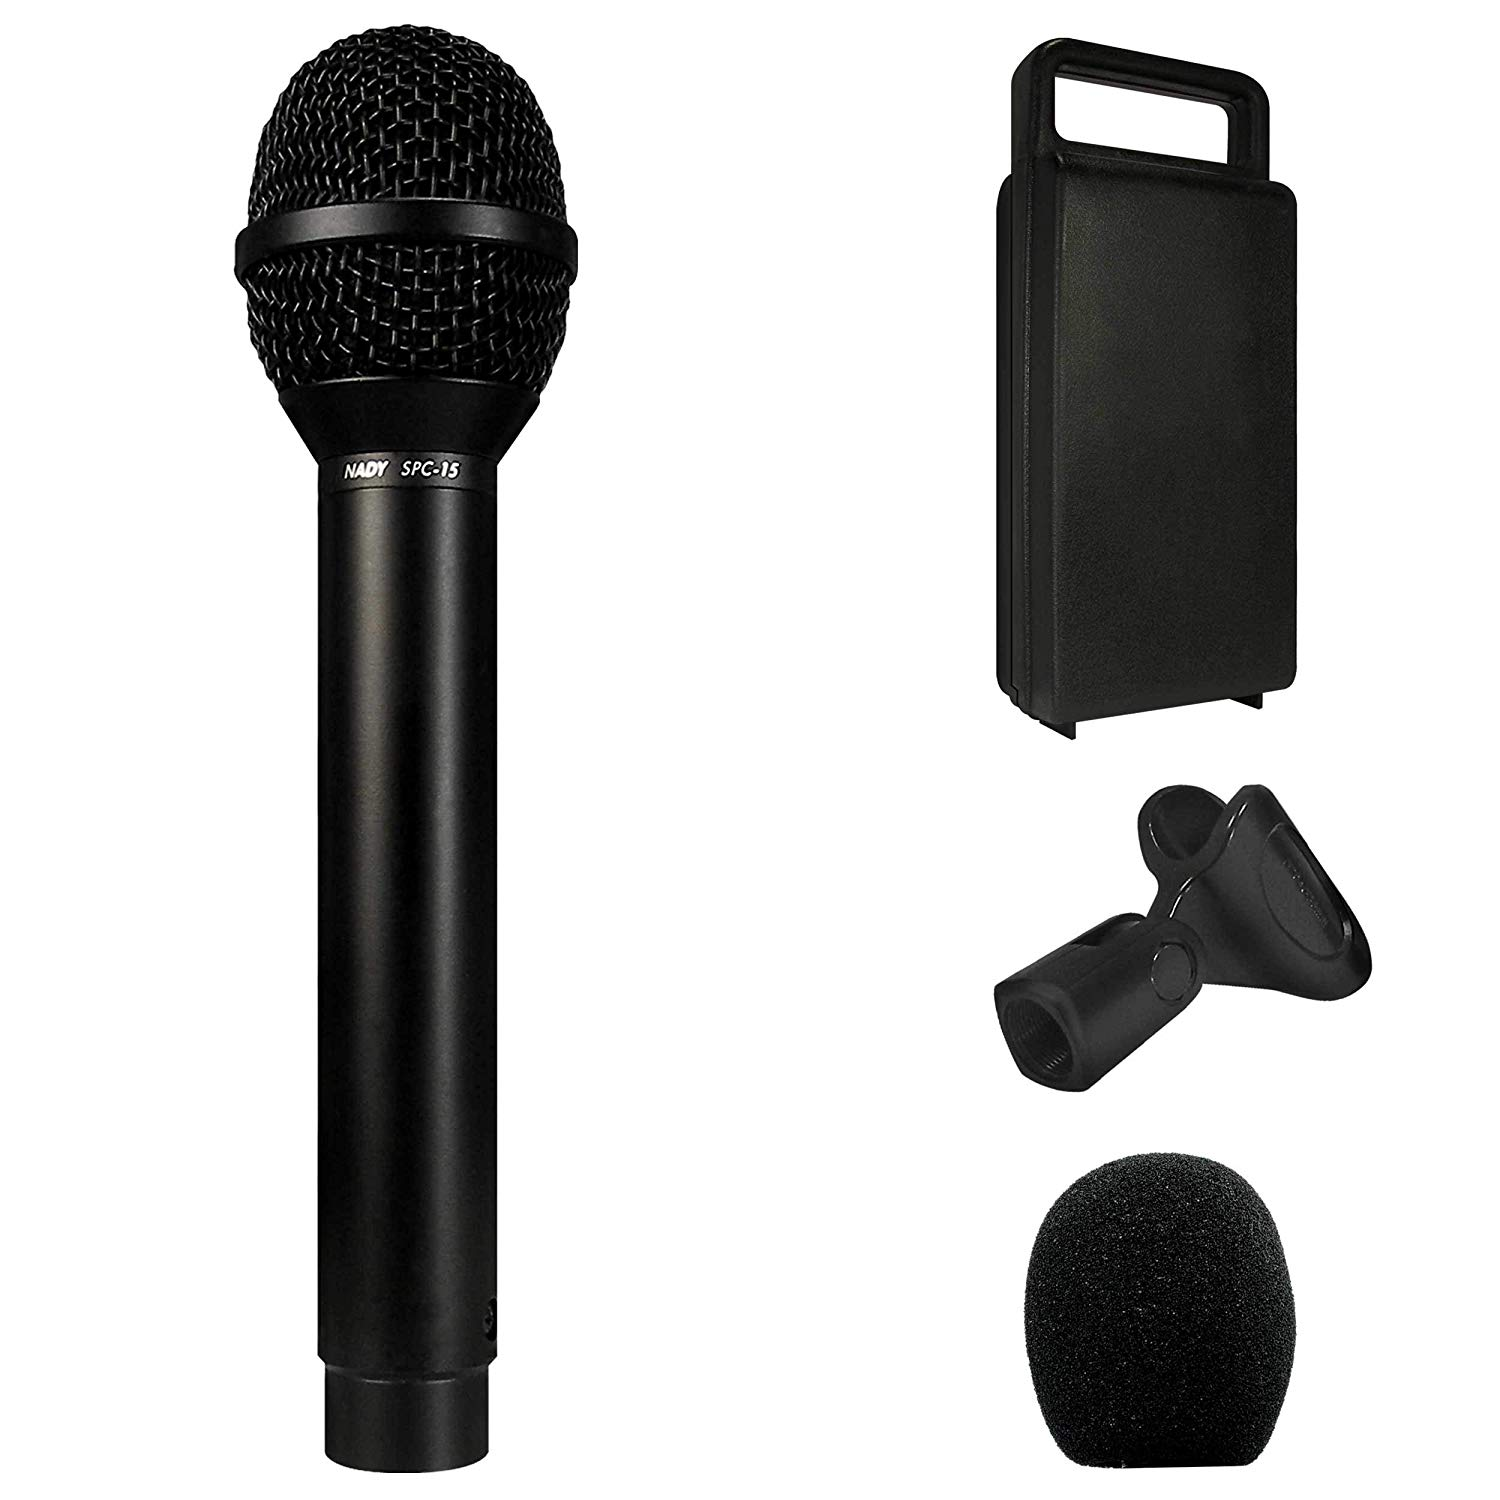 Nady SPC-15 Condenser Microphone - Tailored to enhance vocals, supercardioid polar pattern and wide dynamic range